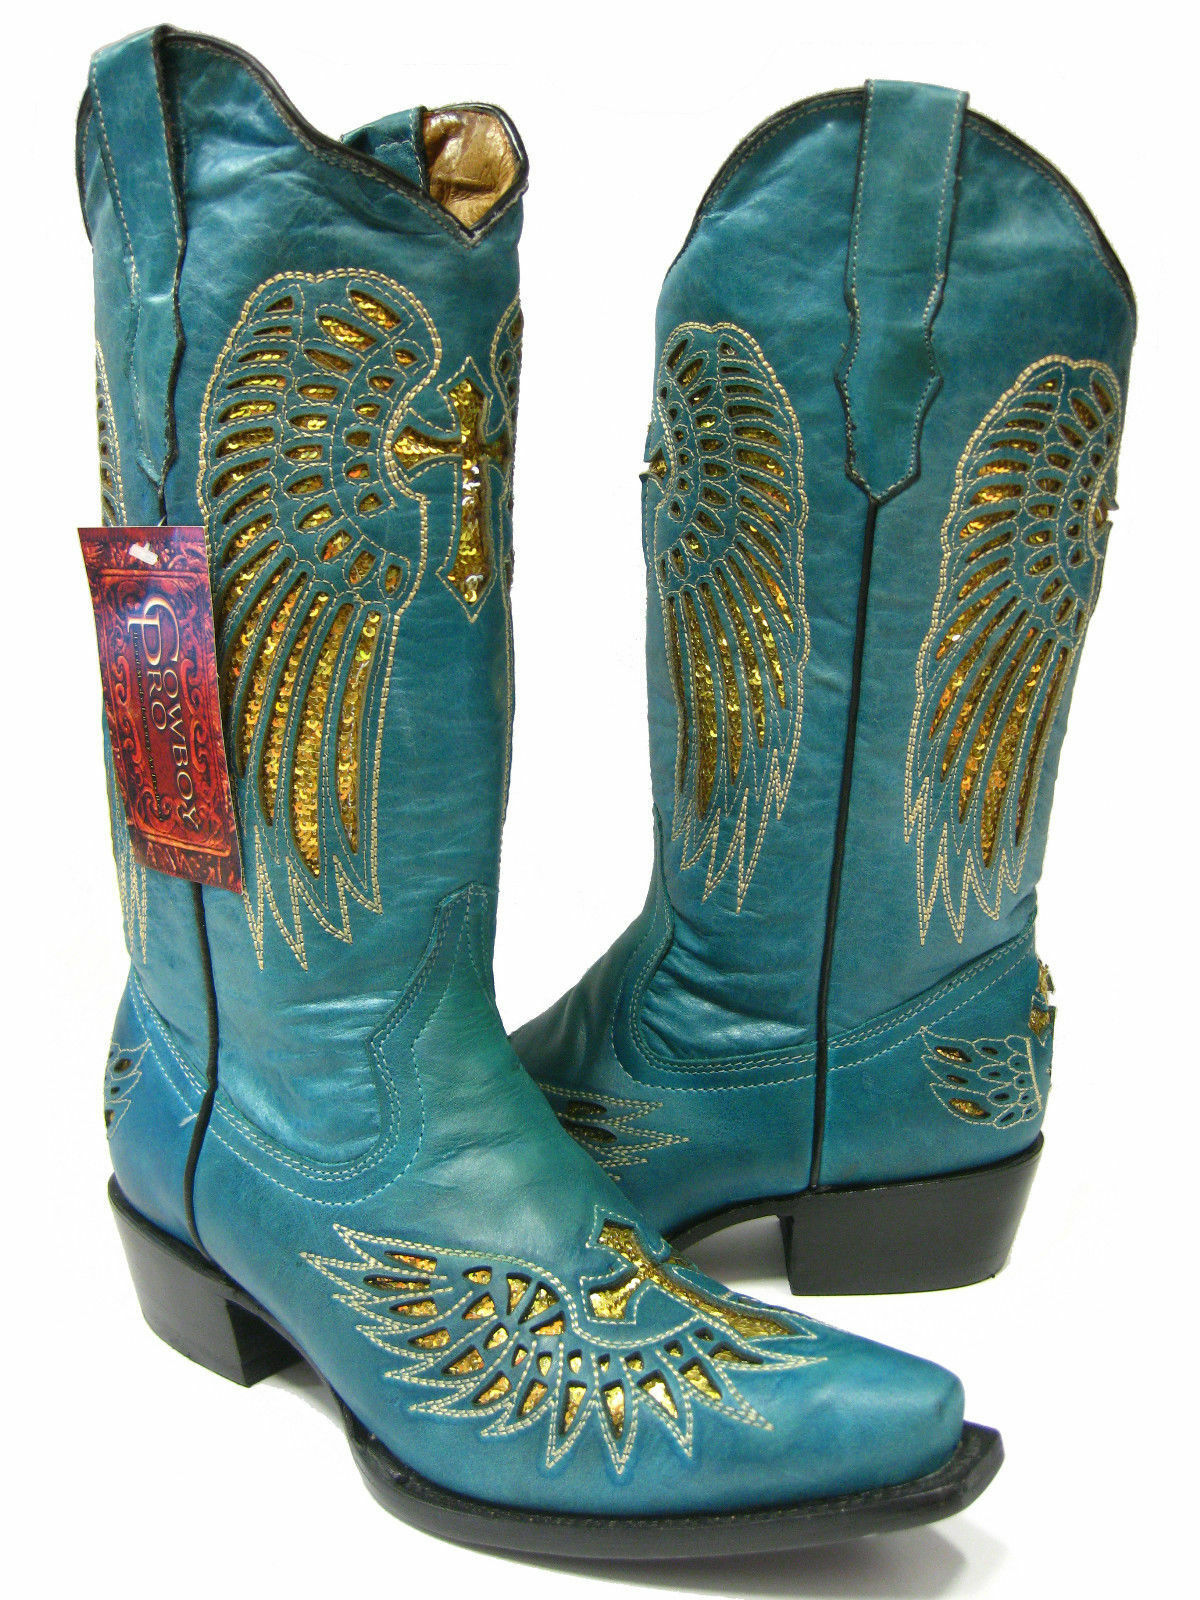 Womens Turquoise gold Cross Sequins Leather Cowgirl Cowgirl Cowgirl Boots Pointed Toe f31f35